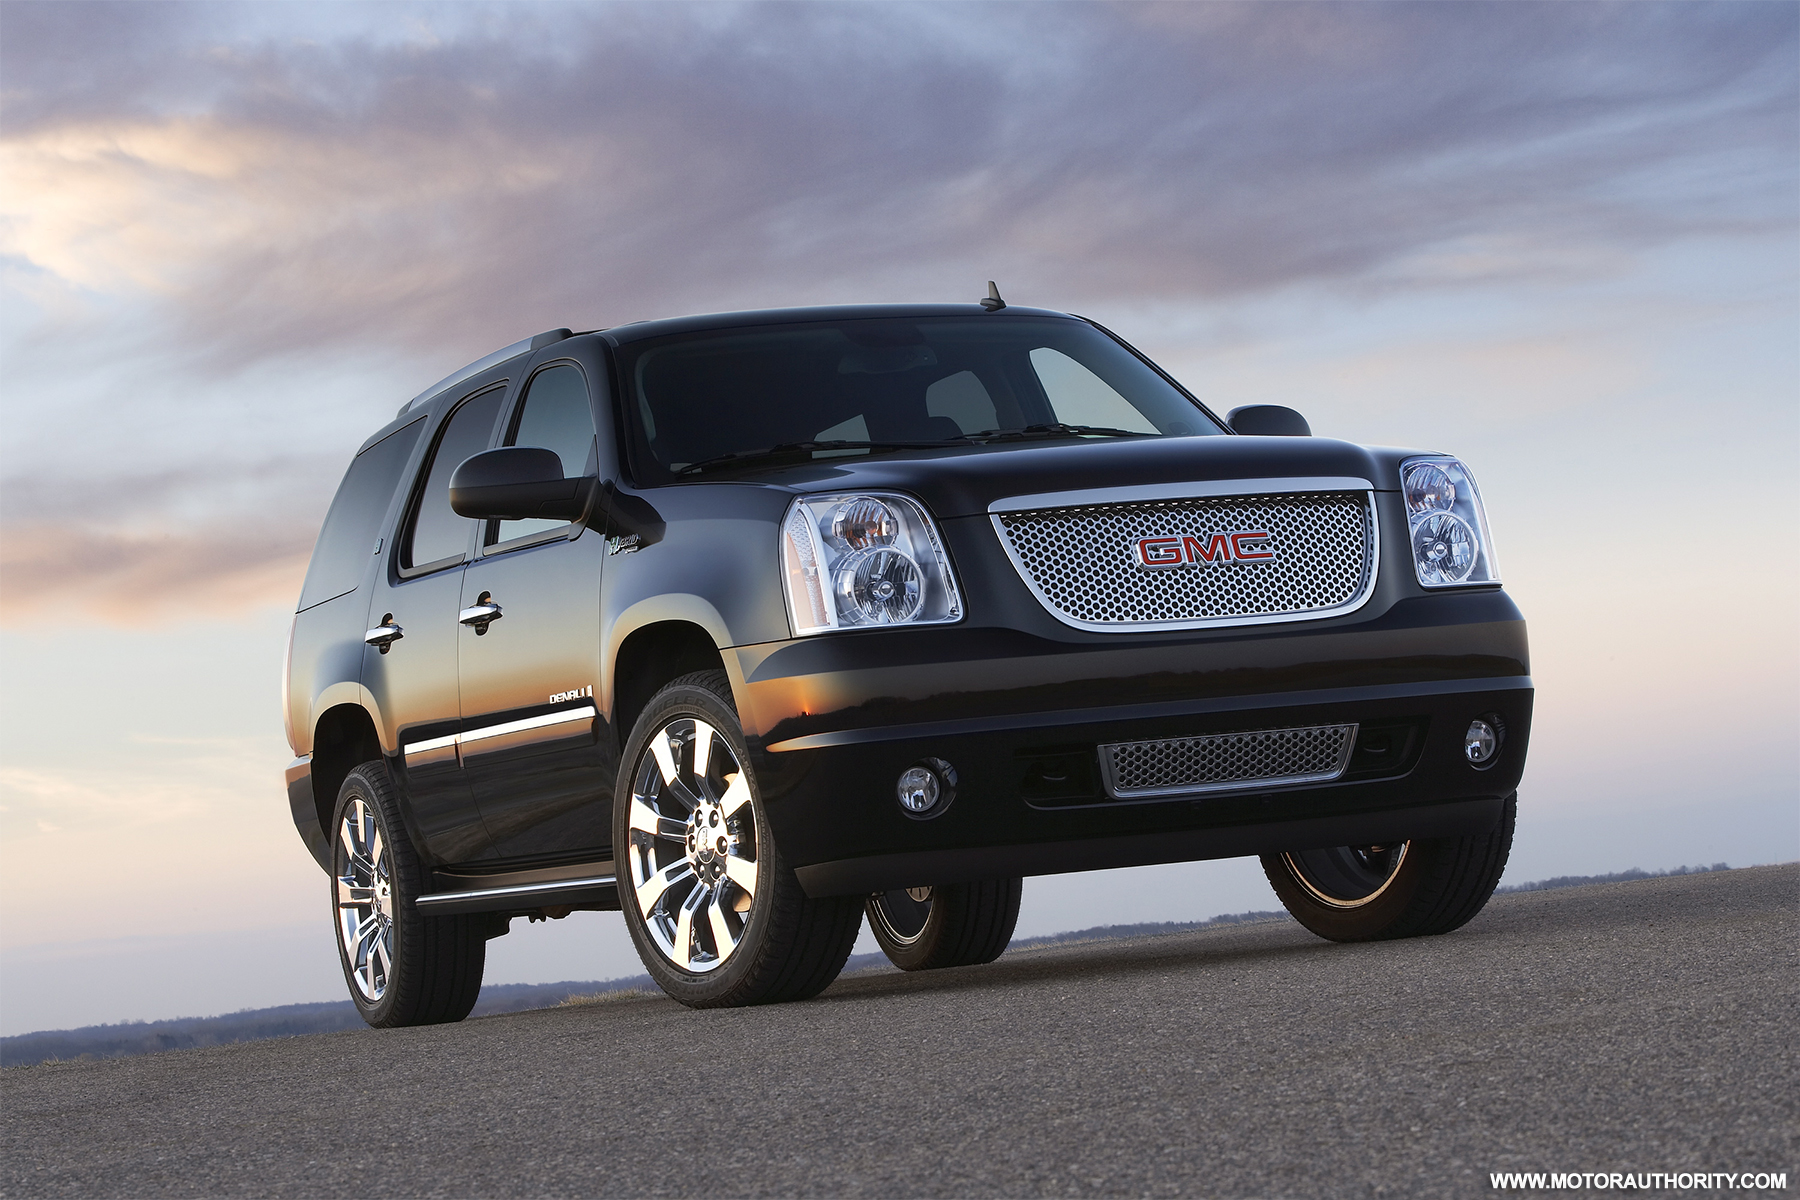 2009 Gmc Yukon Hybrid Denali Review